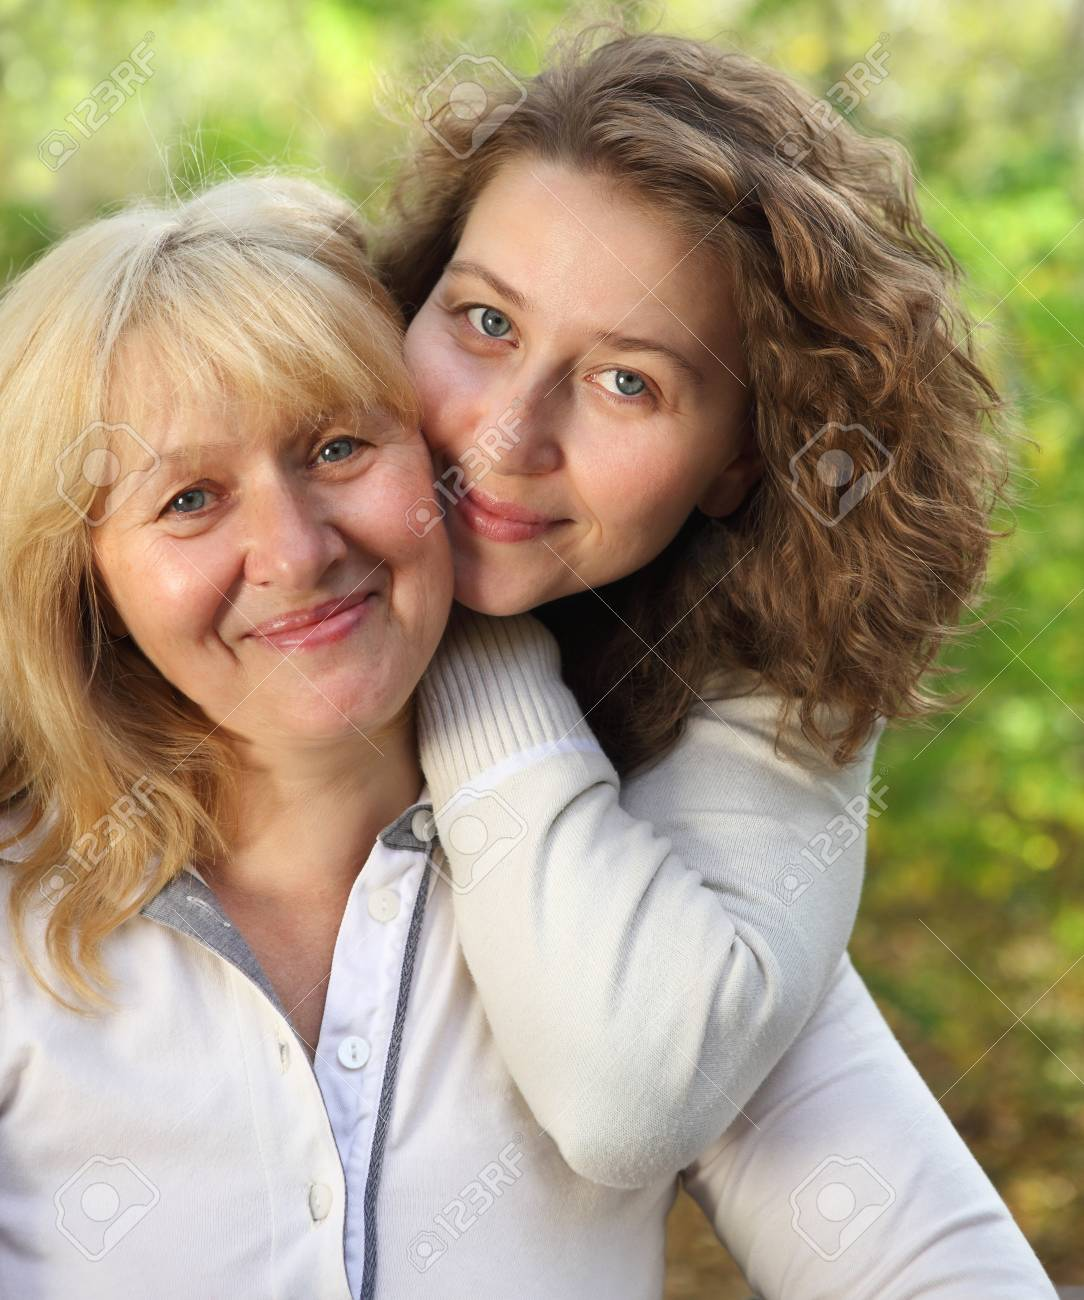 Middle age woman with her daughter outdoors Stock Photo - 16606179